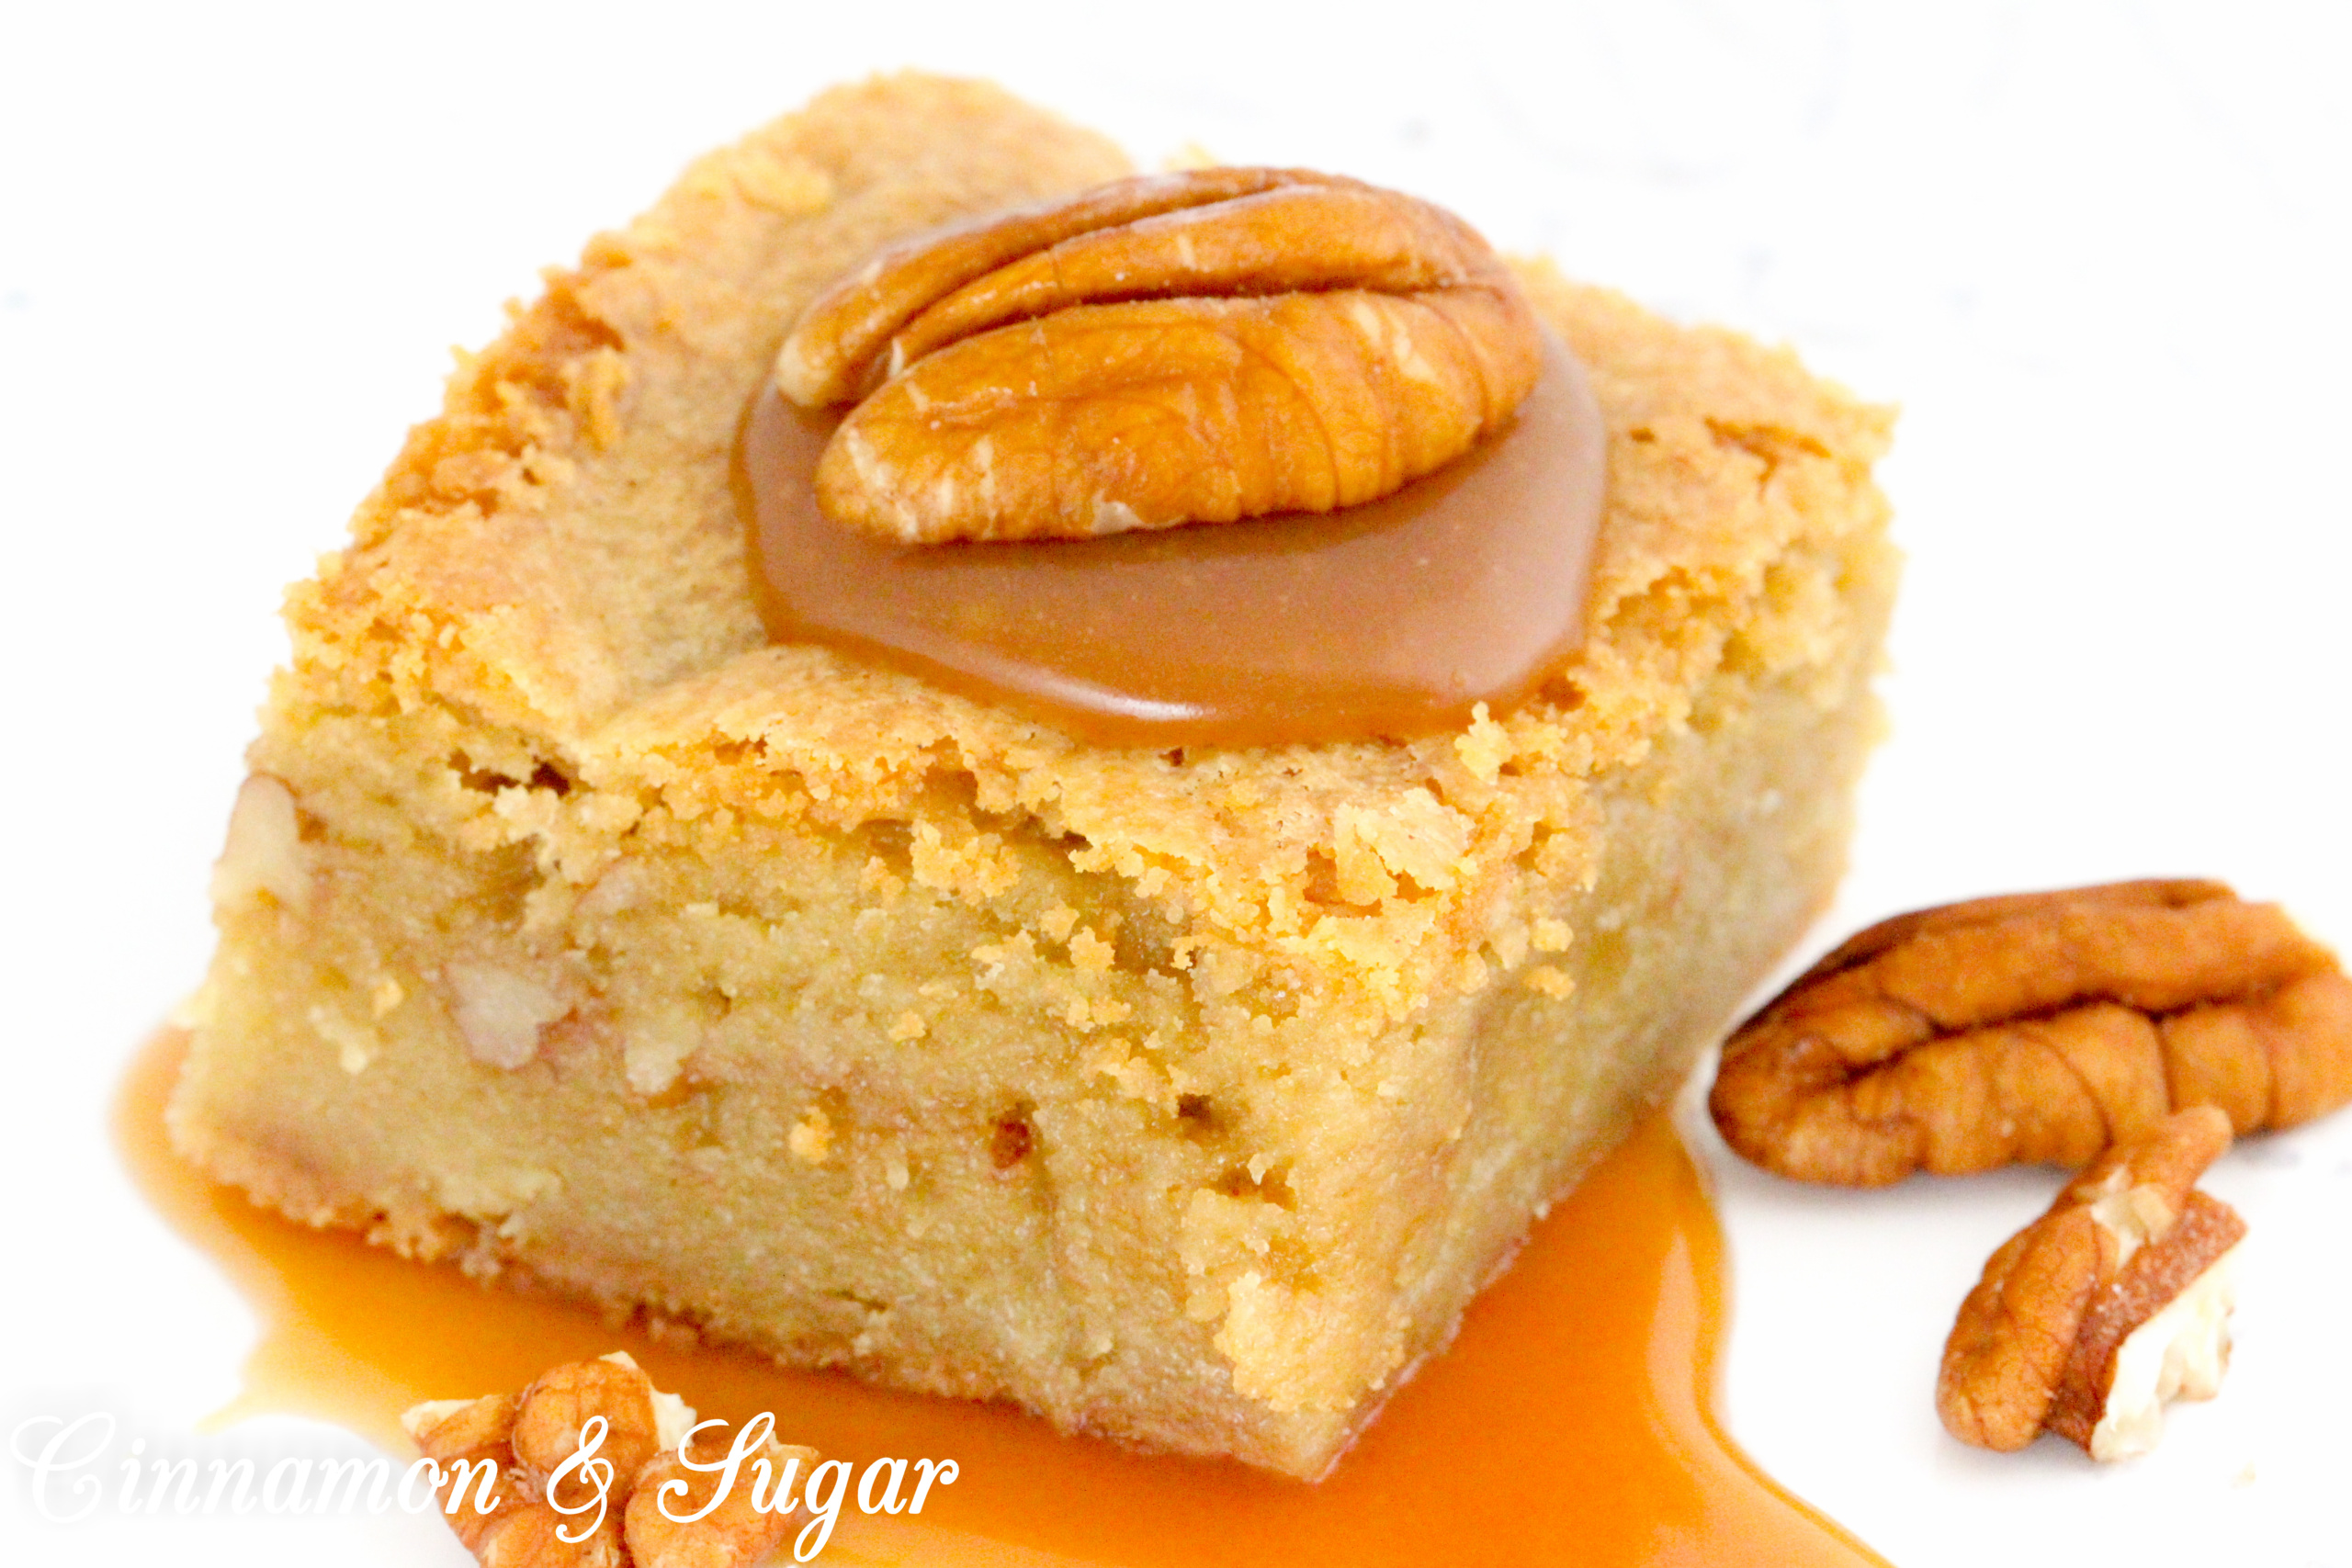 Caramel Blondies have a luscious layer of homemade salted caramel sauce and a generous sprinkle of chopped pecans between rich, buttery blondies. Recipe shared with permission granted by Daryl Wood Gerber, author of A SPRINKLING OF MURDER.